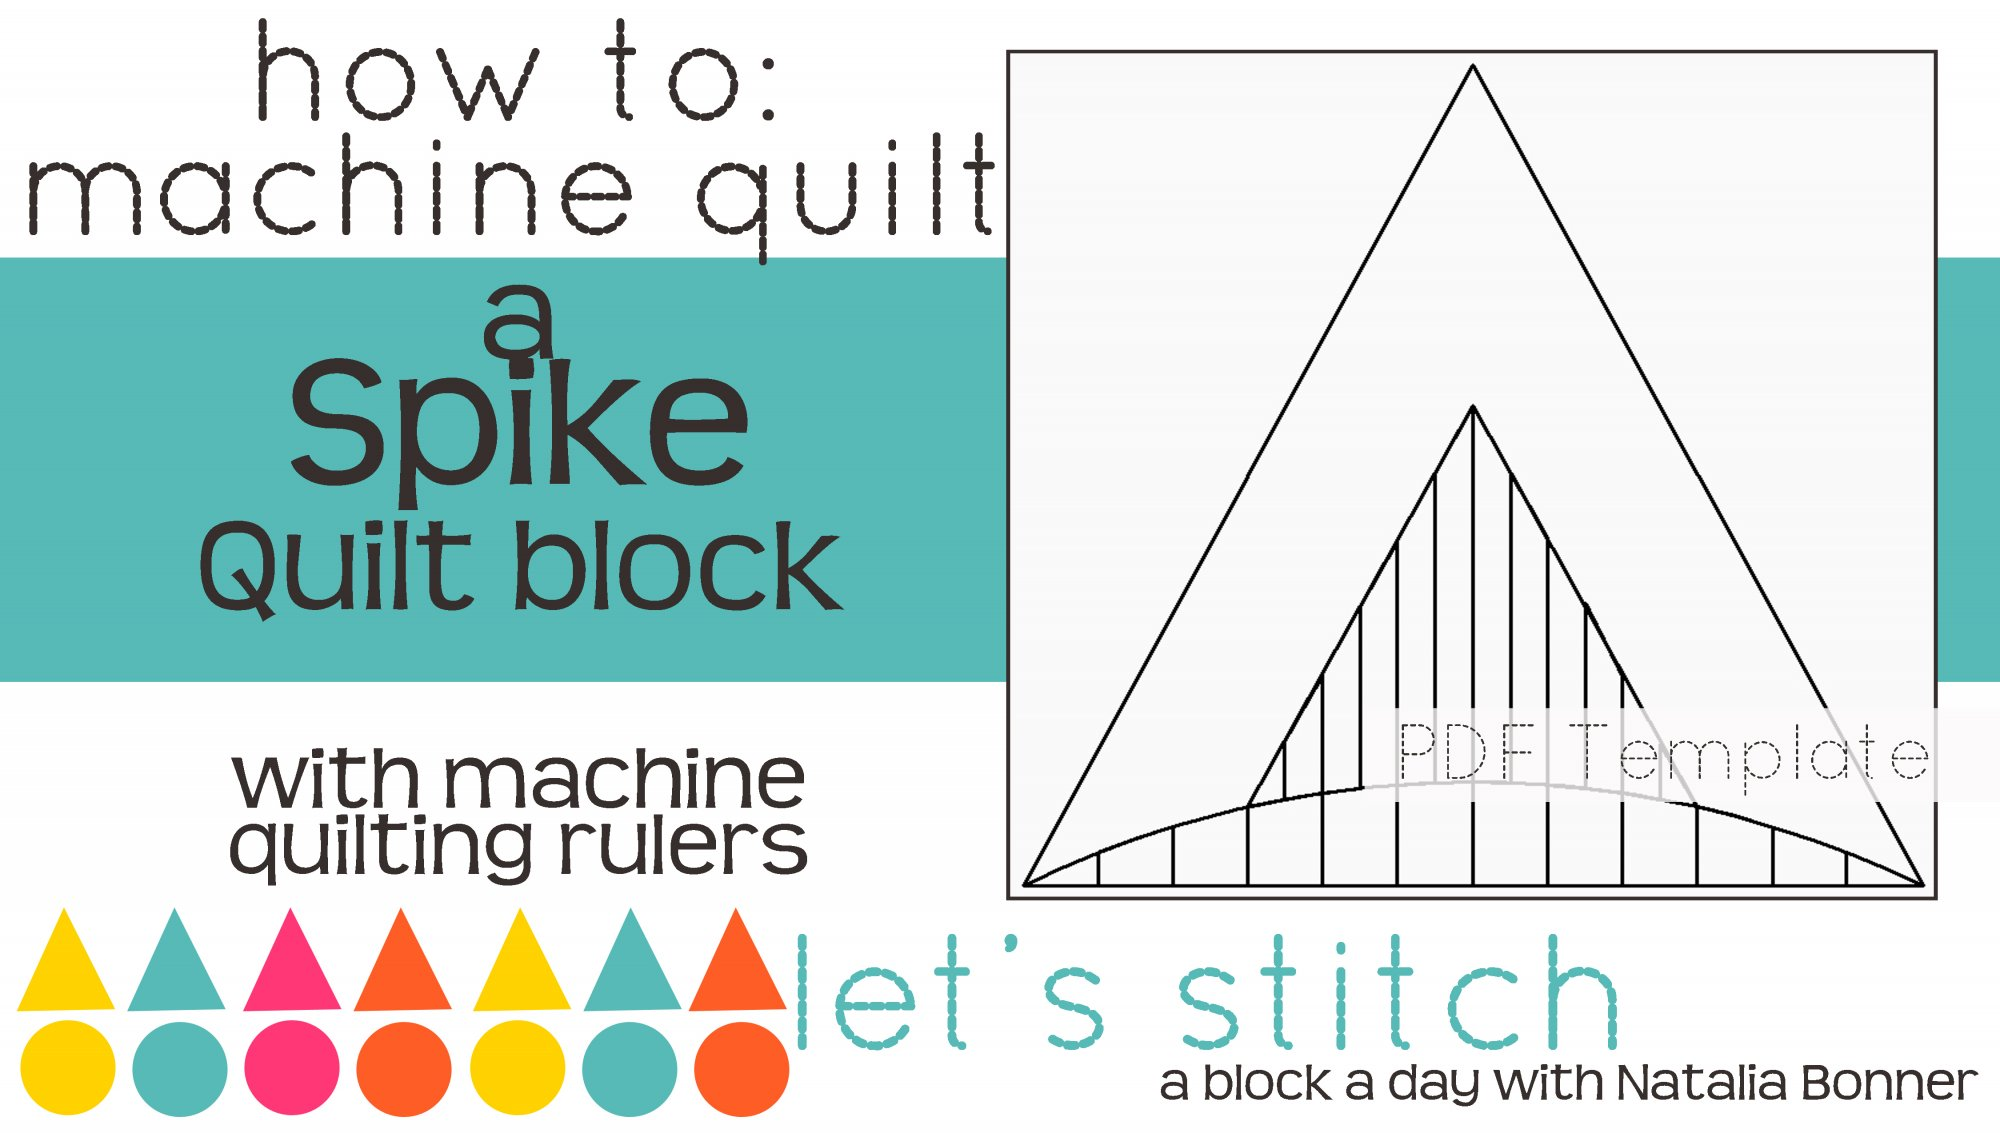 Let's Stitch - A Block a Day With Natalia Bonner - PDF - Spike